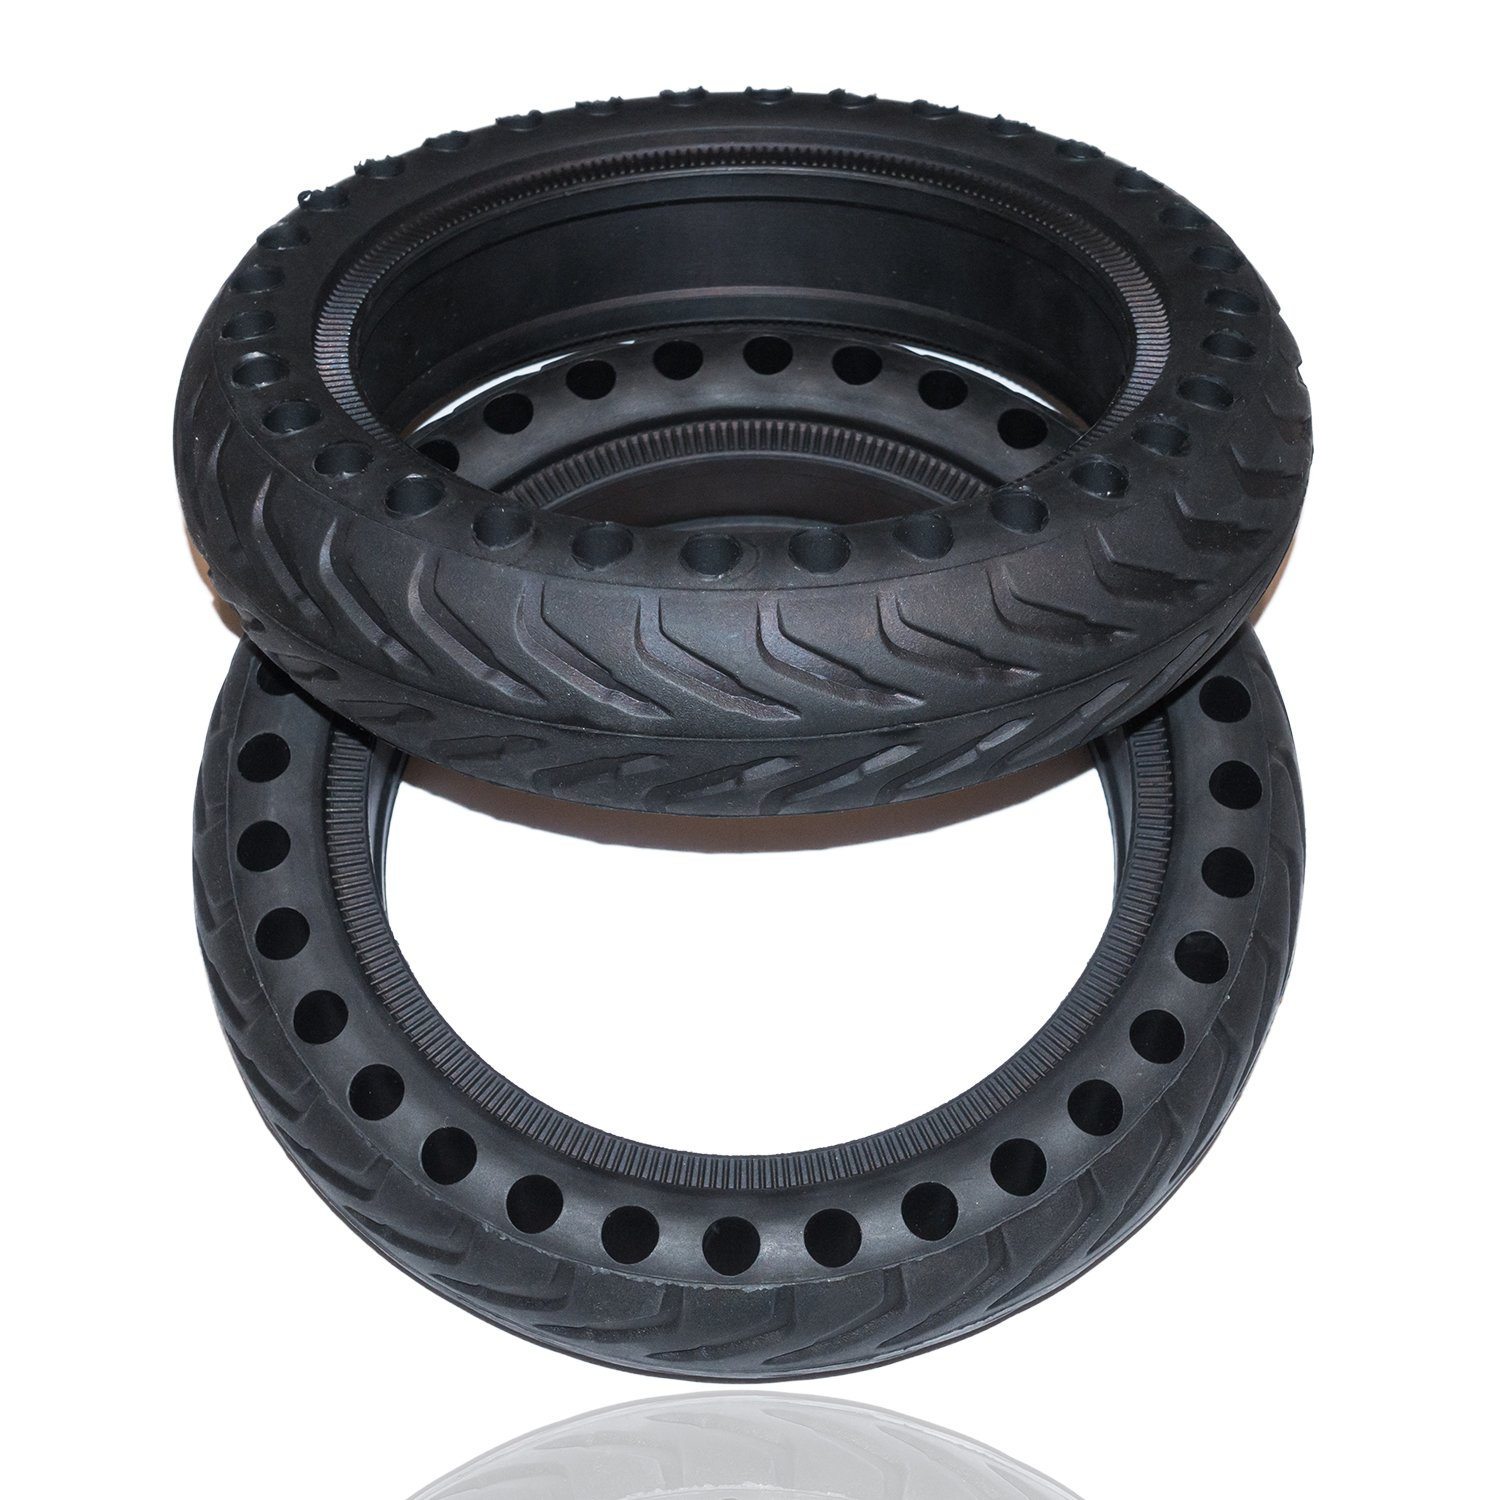 Rollsafe Drilled Solid Tubeless Replacement Tires for Xiaomi Mi Electric Scooter M365 Mijia (Set of 2)